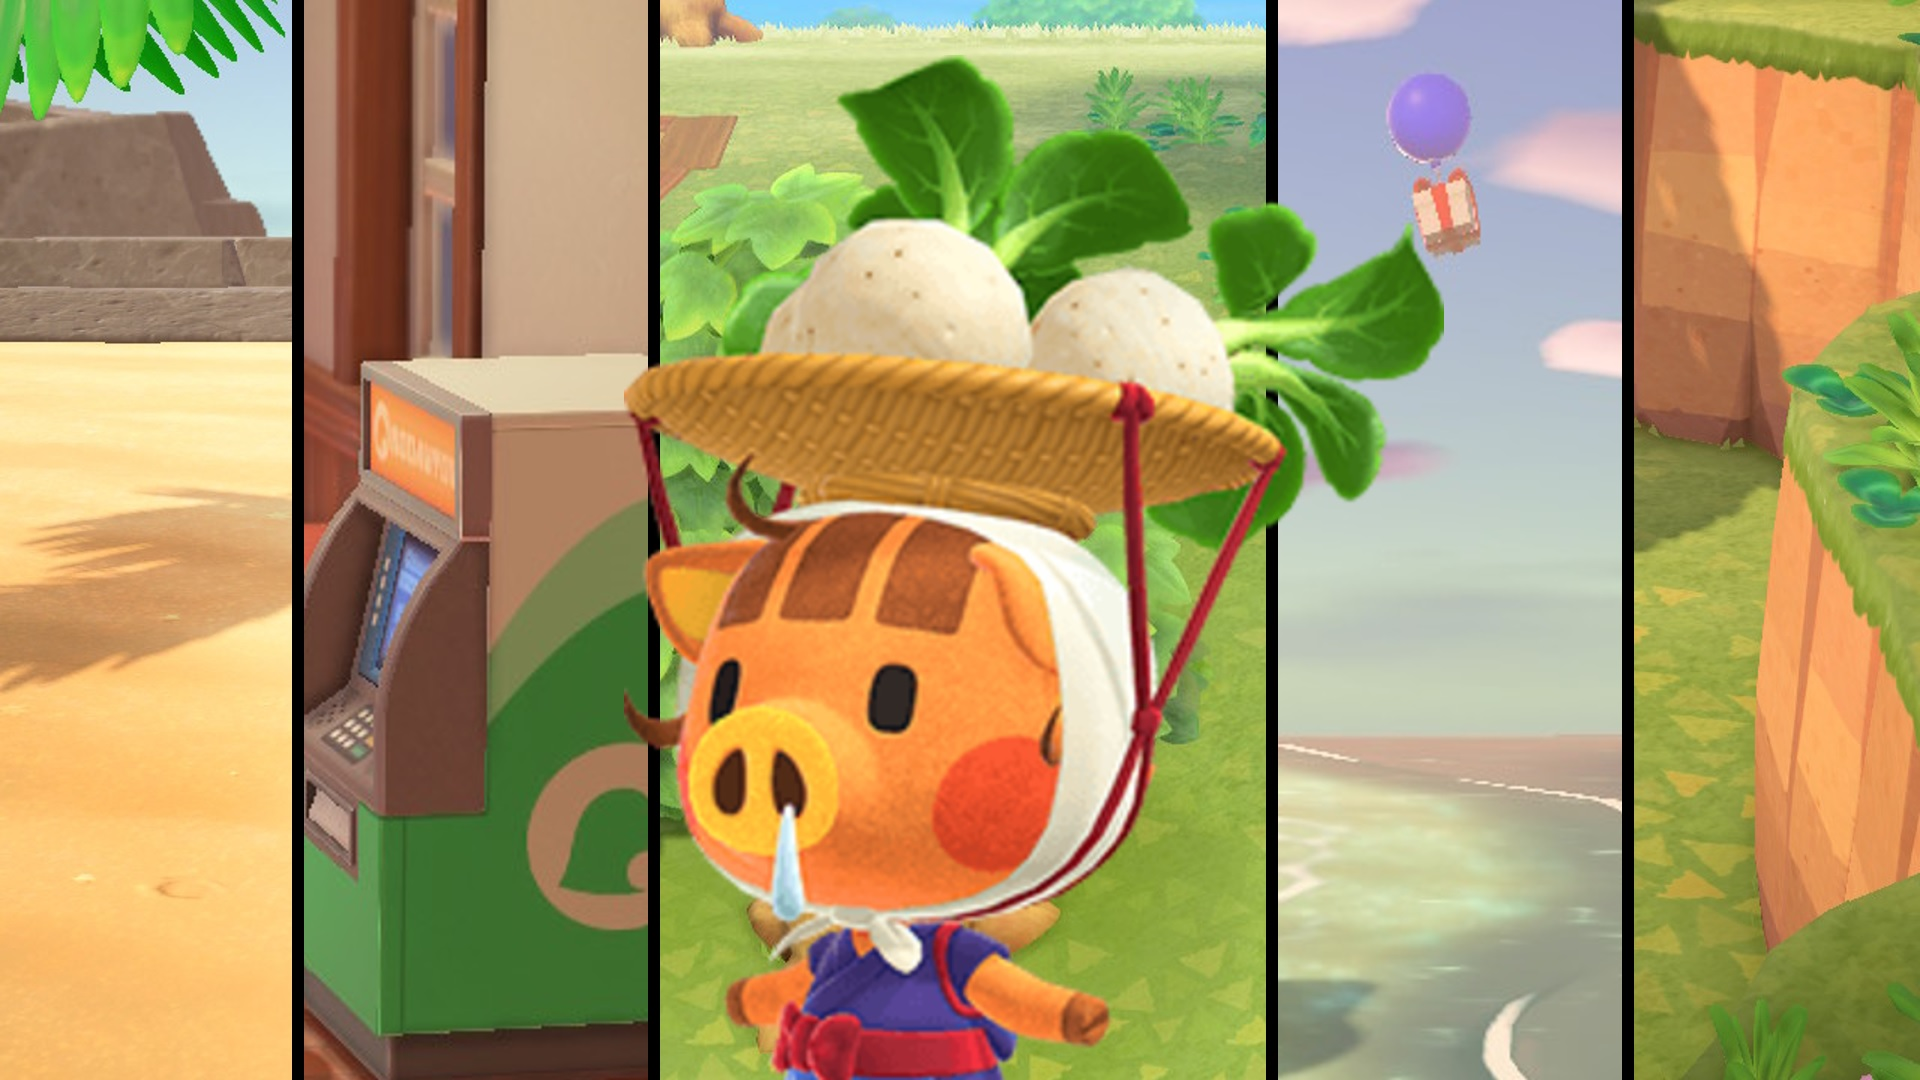 Can you plant turnips in Animal Crossing: New Horizons?